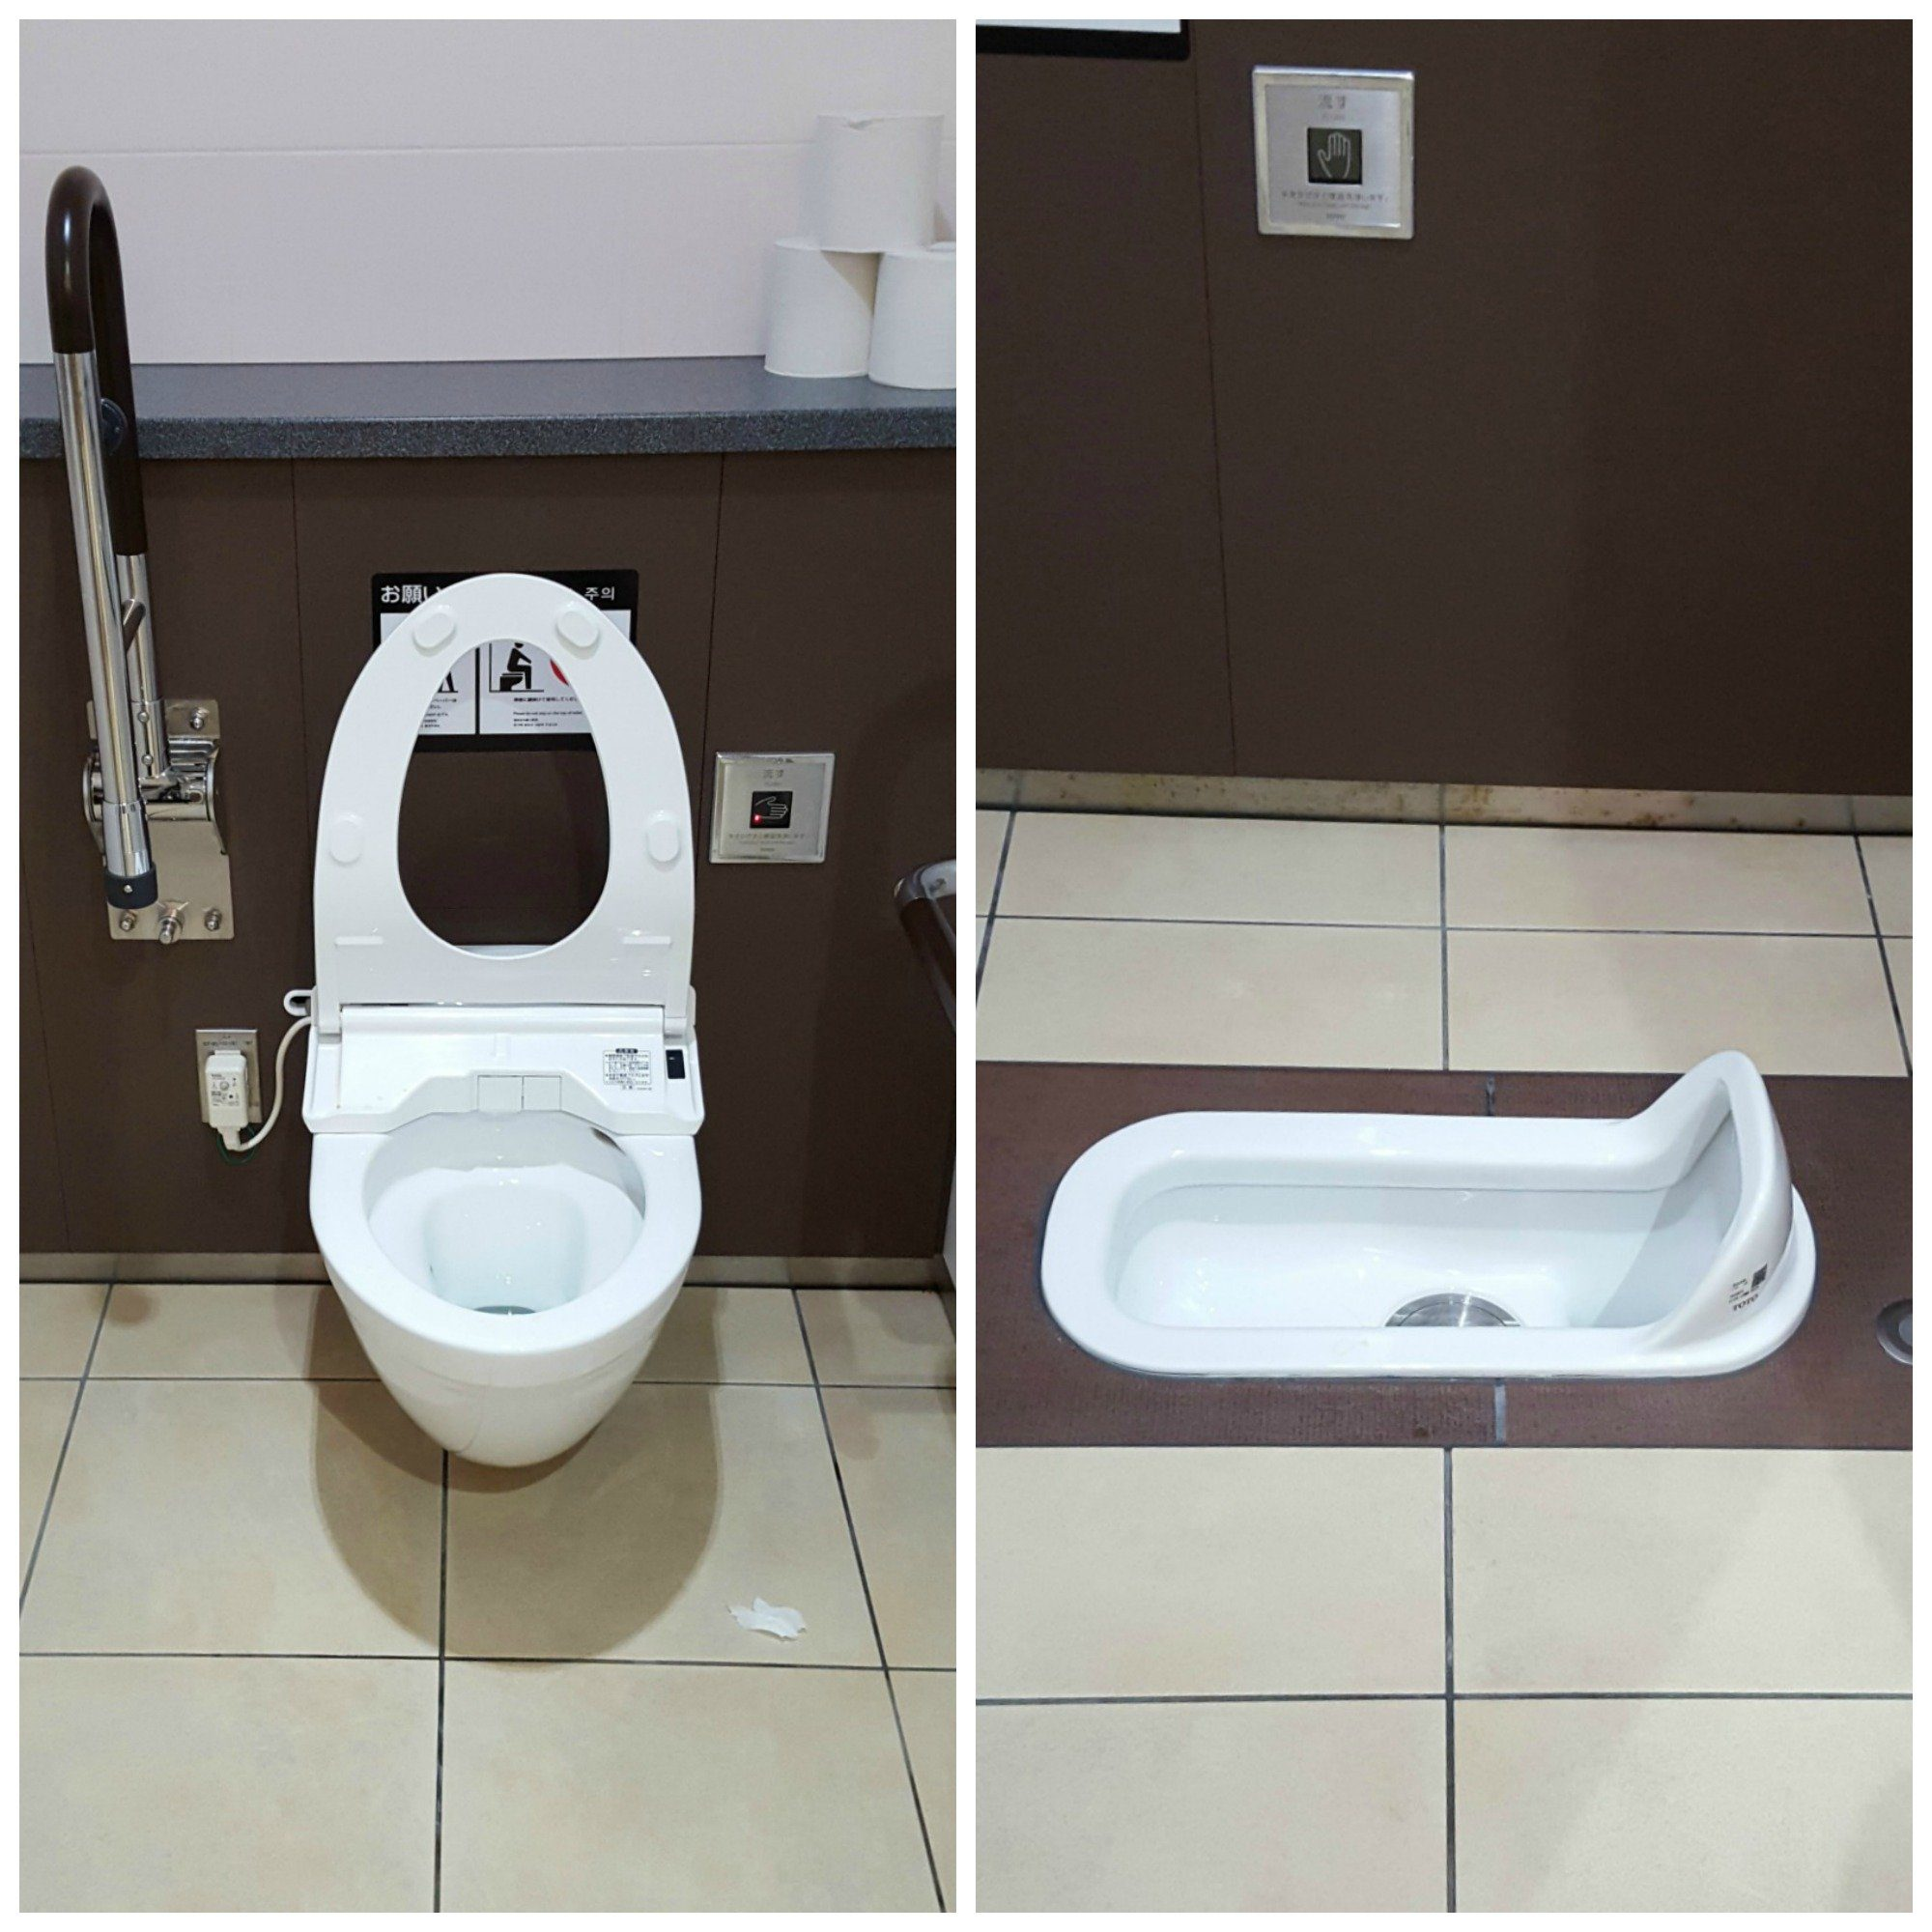 Bidet Toilet and Squat Toilet in Japan